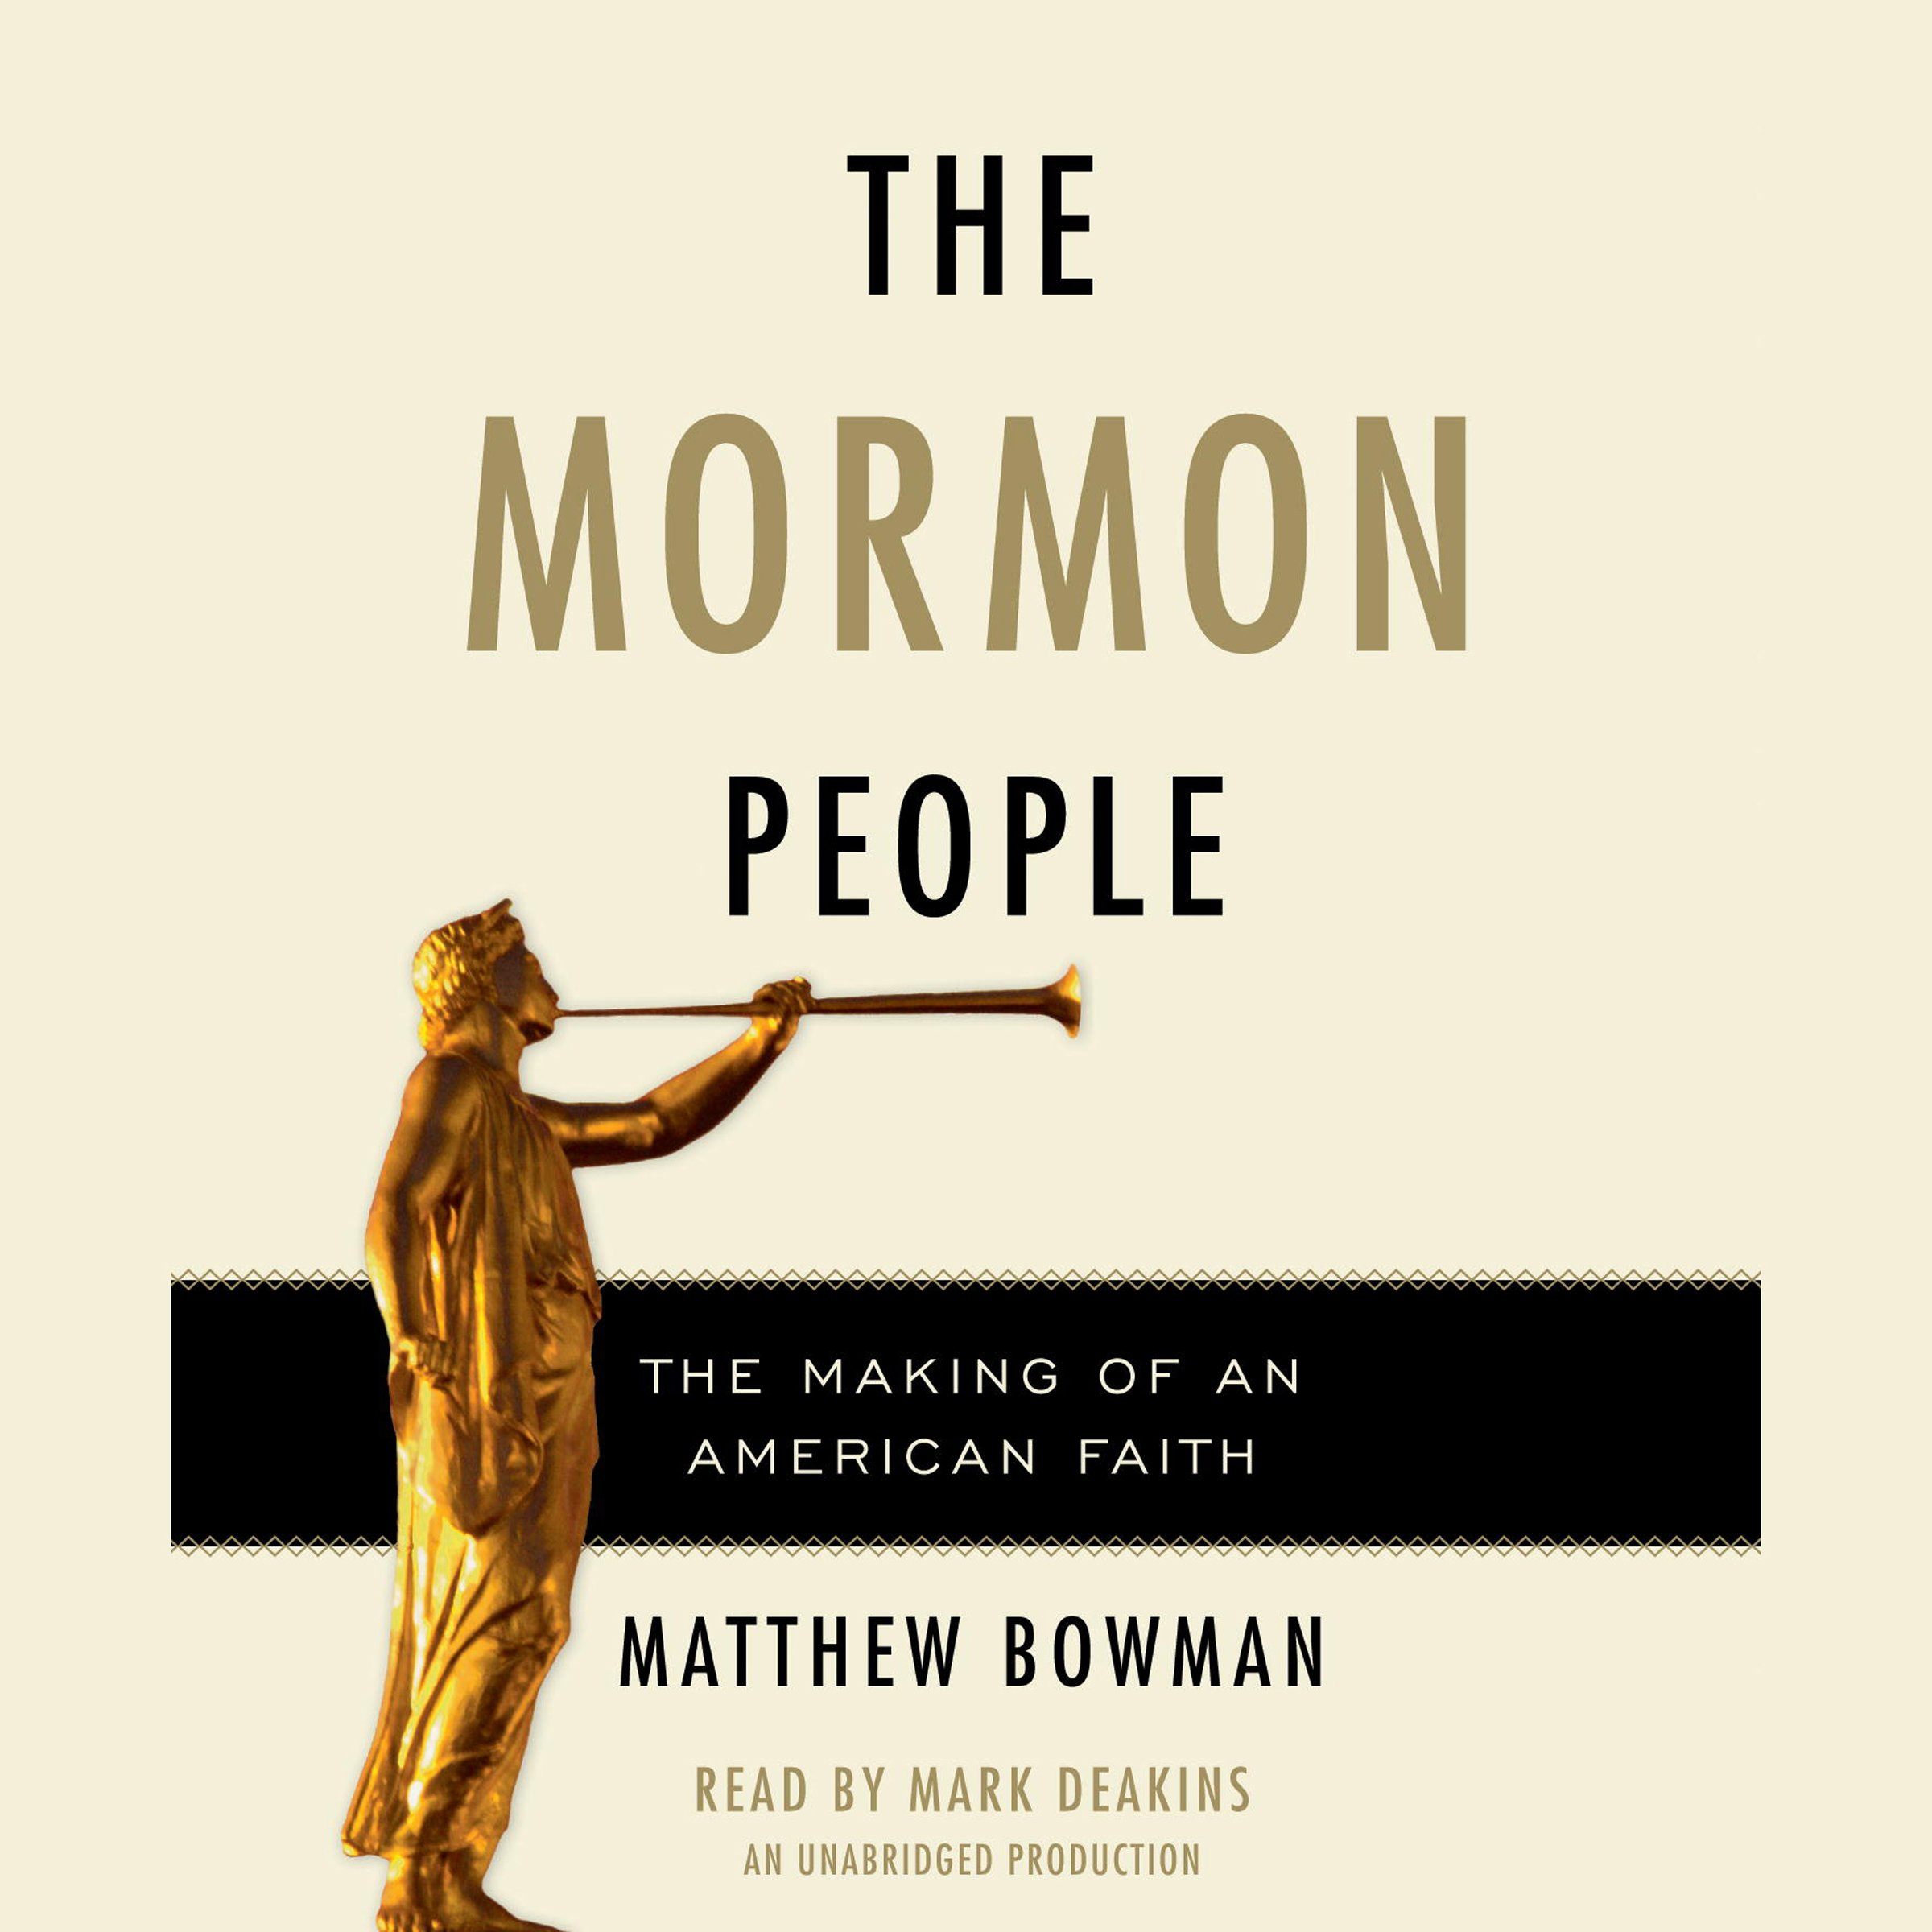 The Mormon People: The Making of an American Faith